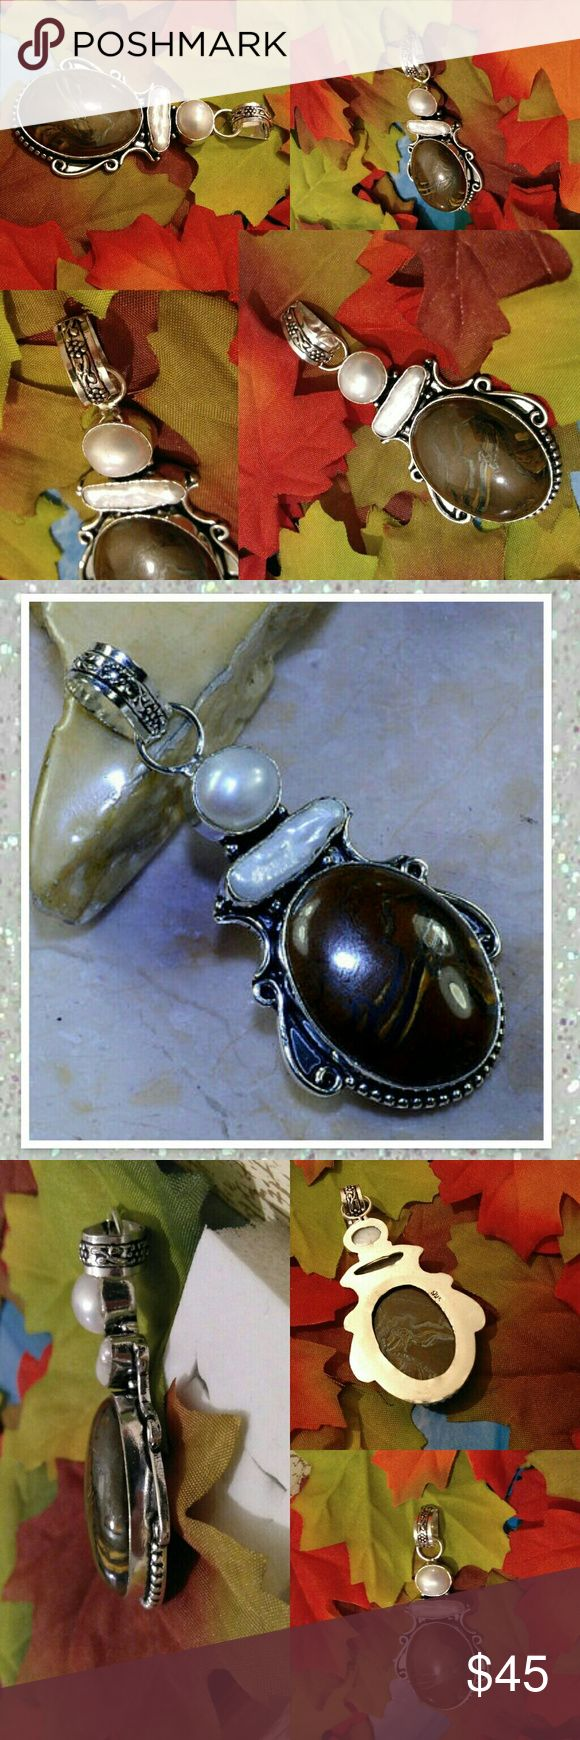 Iron Tigers Eye BIWA n Fresh Water Pearl Pendant Beautiful n lucky Iron Tigers Eye BIWA N Fresh Water Petal  925 Stamped Sterling Silver Pendant 2 ¾ Length Lucky Charm  Handmade 🎁 Gift box included🎁  ⚜Check out the rest of my closet⚜ 🎁 Save $ on Holiday Gifts🎁  💯 Brand New N High Quality  💯 WHAT U C IS WHAT YOU'LL GET ♡Engaged after 3 yrs Long distance We r Raising $ ourselves 2 pay Visa Fees, plane tickets N wedding Plz Follow to help us reach our goal Thank u so much Jewelry